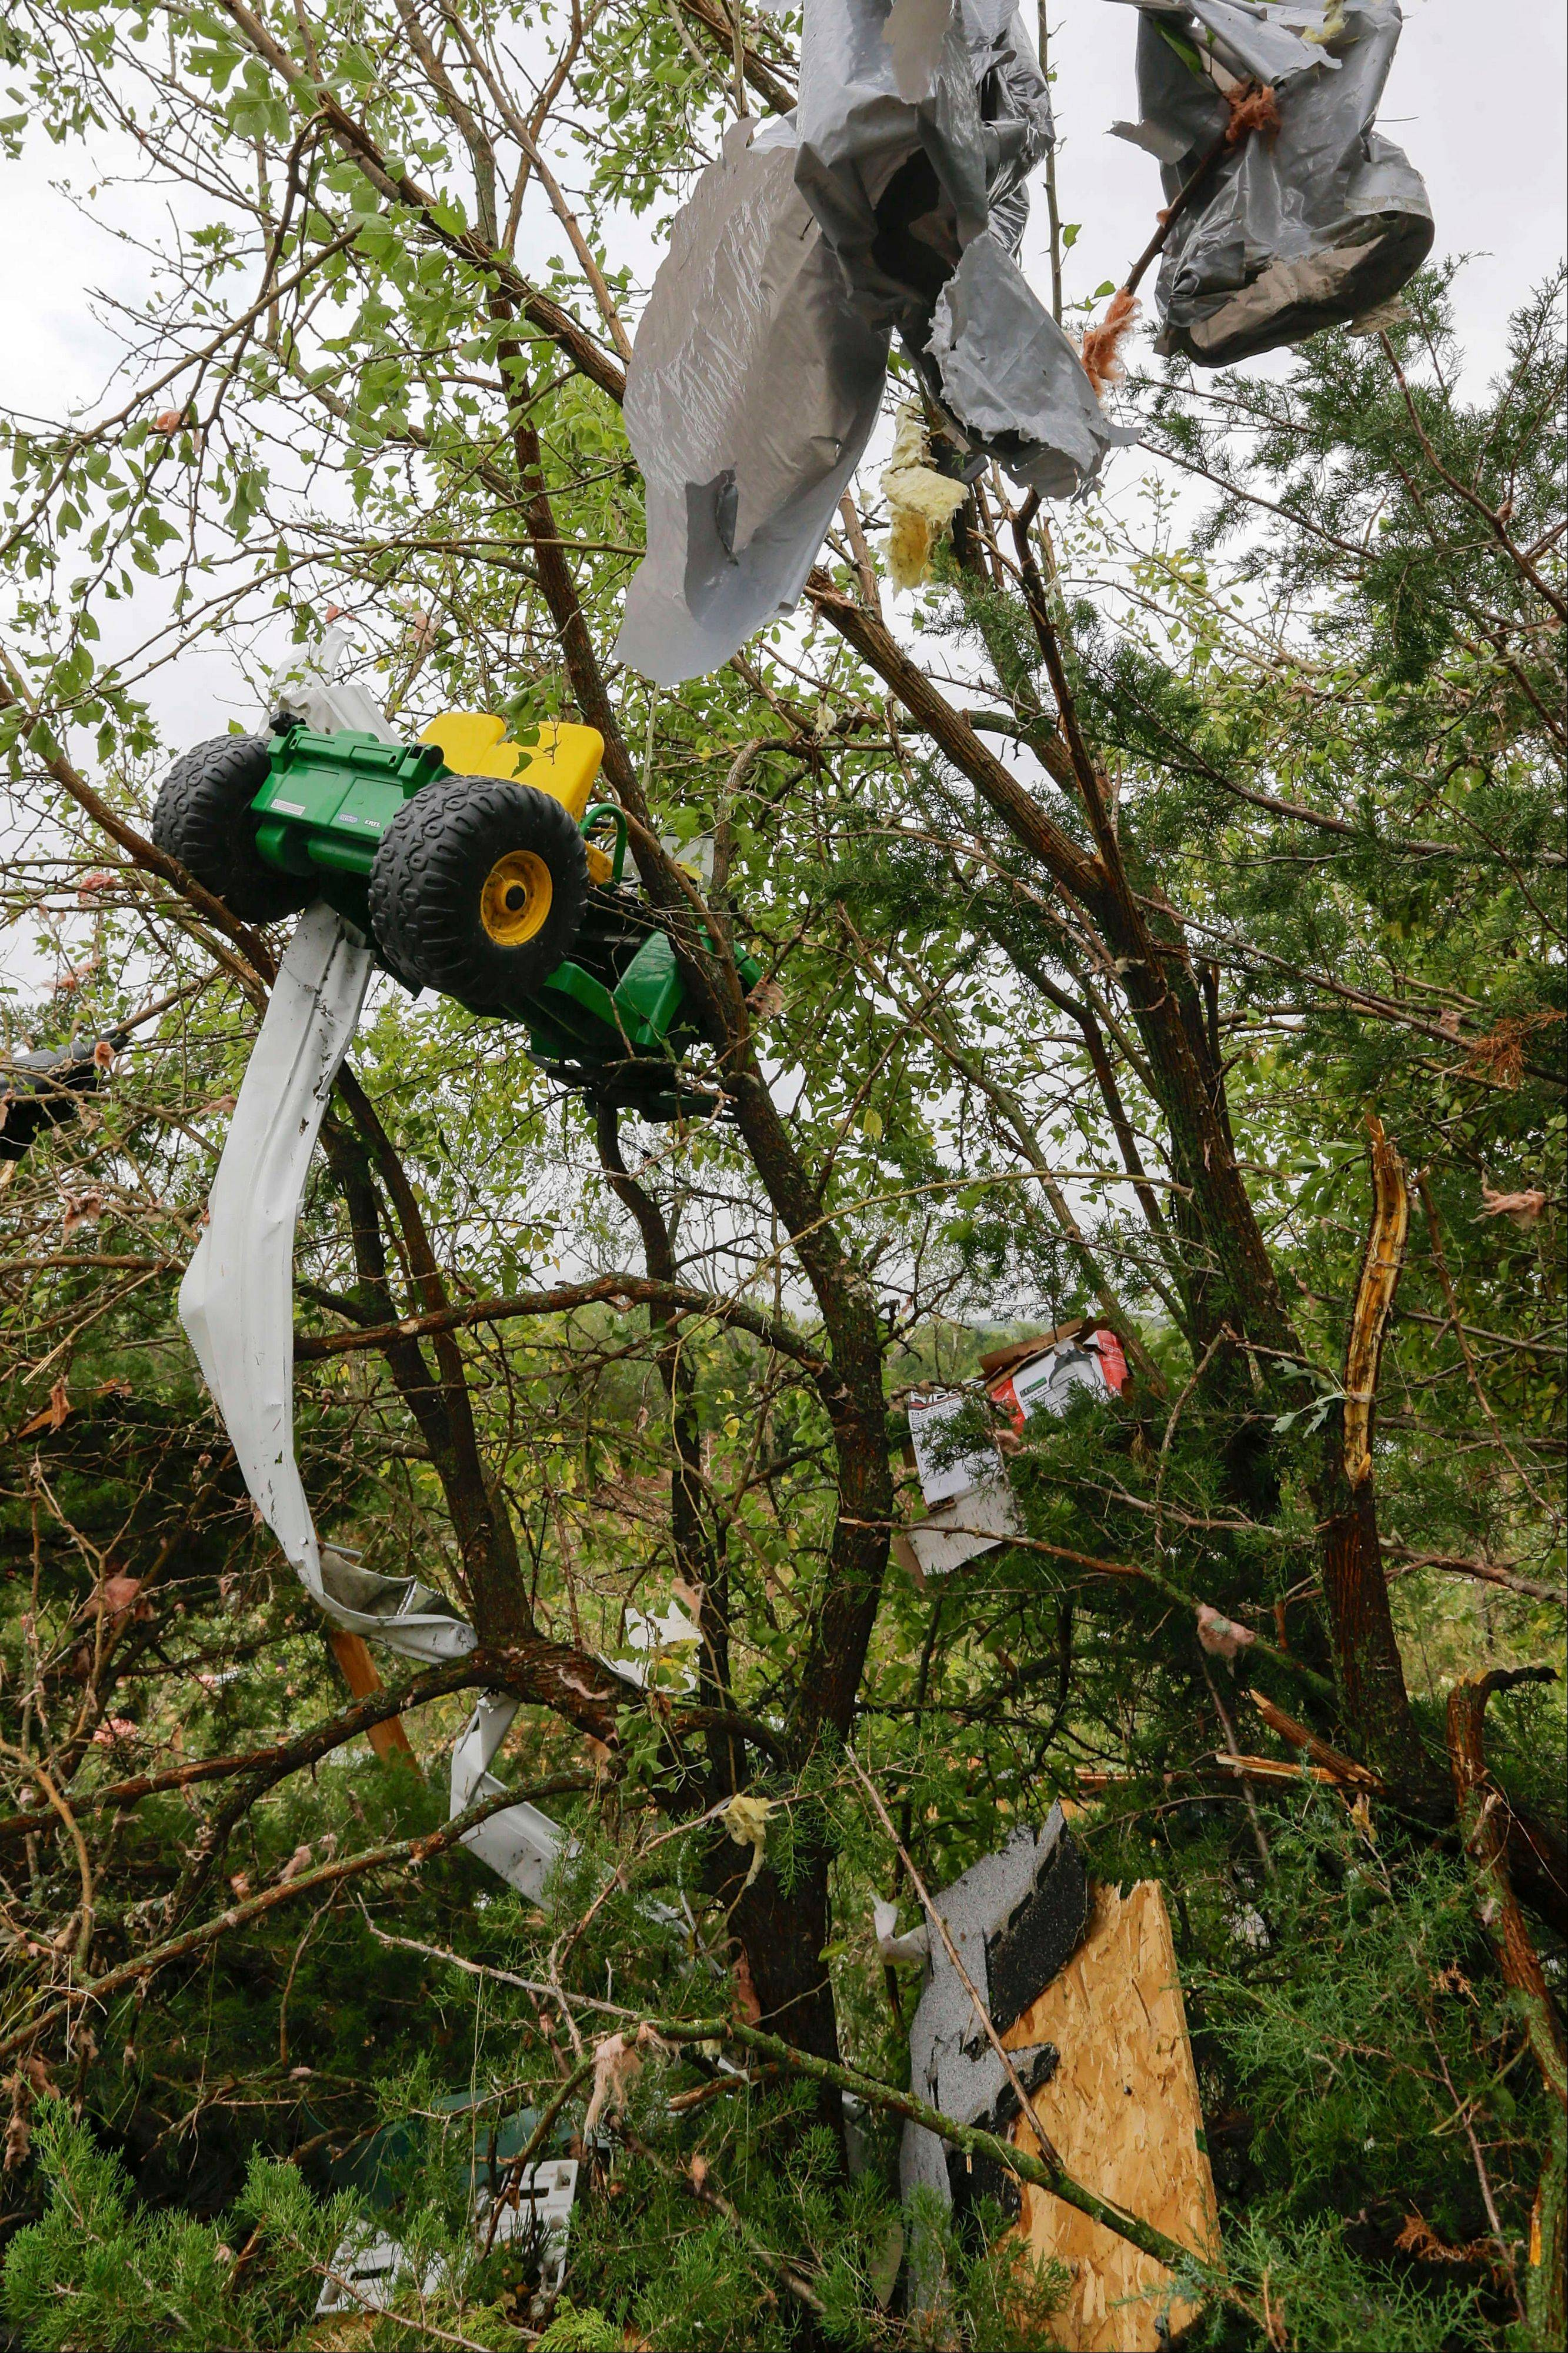 Debris, including a toy tractor, are trapped in a tree following a tornado in Hickman, Neb., Friday, Oct. 4, 2013. Powerful storms crawled into the Midwest on Friday, dumping heavy snow in South Dakota, spawning a tornado in Nebraska and threatening dangerous thunderstorms from Oklahoma to Wisconsin.